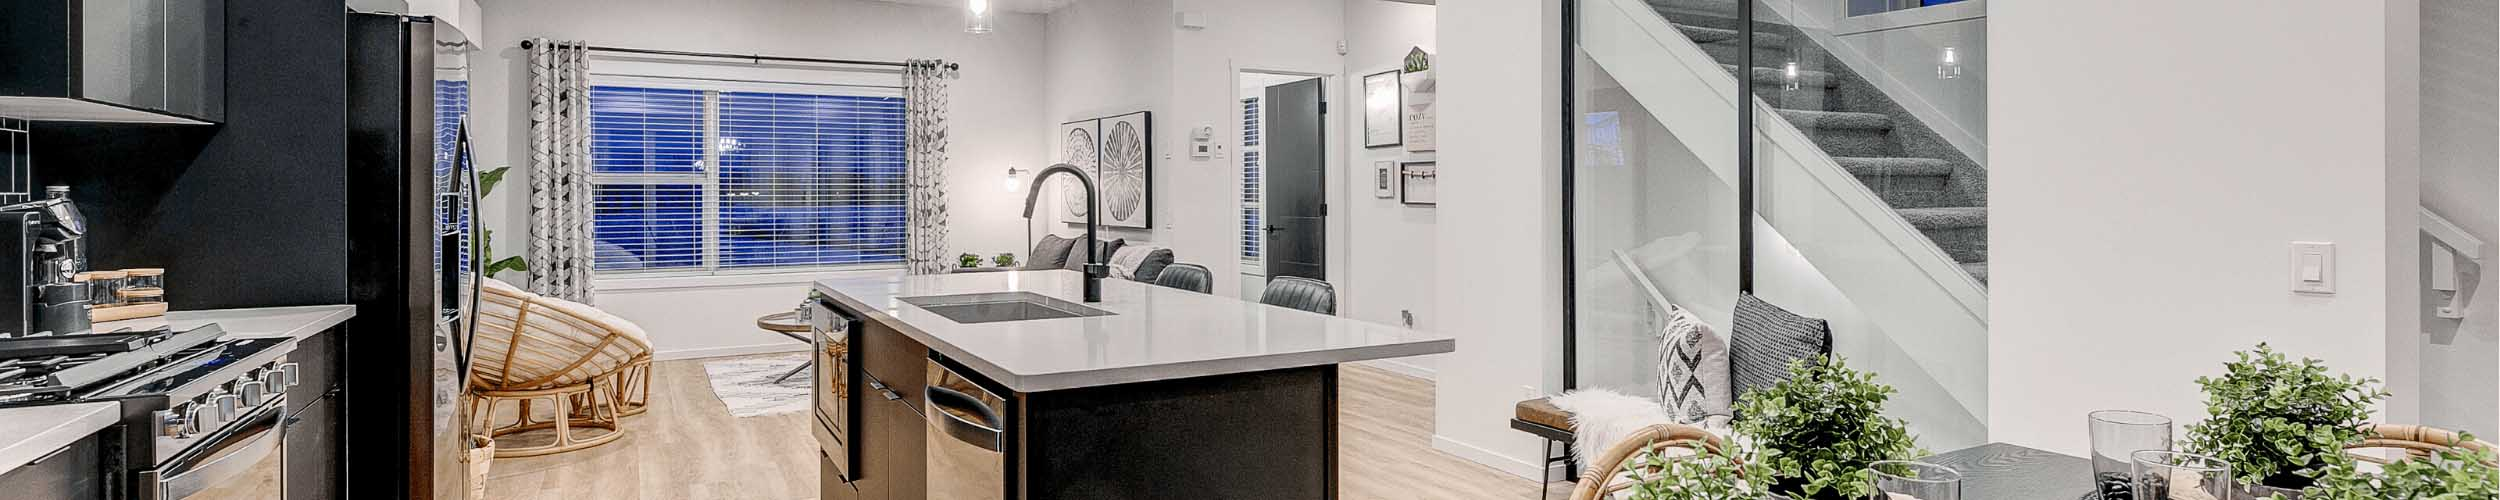 Bristol Kitchen for South Edmonton Townhome Promotion by City Homes Master Builder